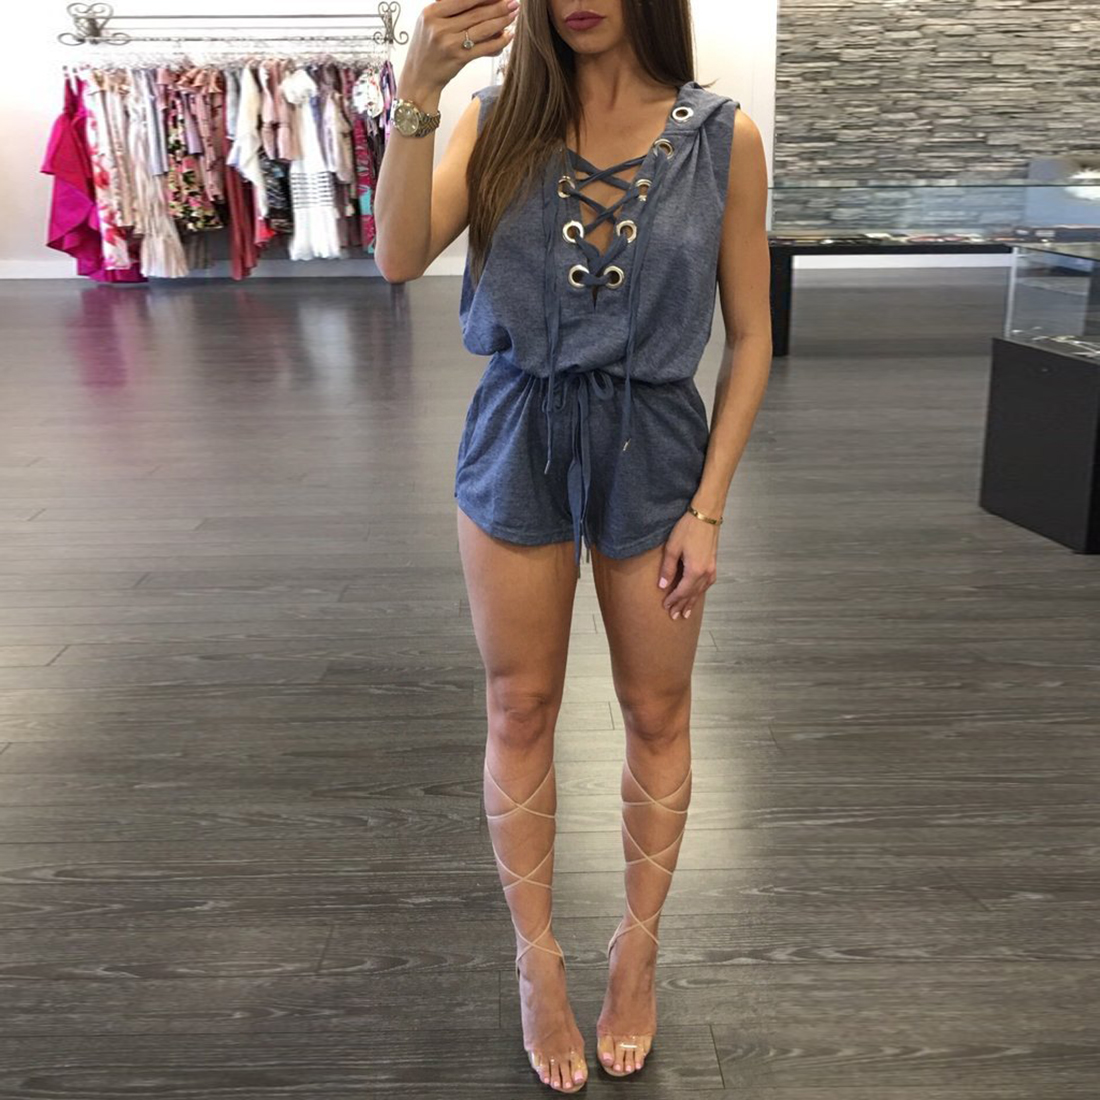 YJSFG HOUSE Women Sleeveless Overalls Hooded Playsuits Sexy 2017 Sexy Women Short Jumpsuit One Piece Lace Up Rompers Bodysuit